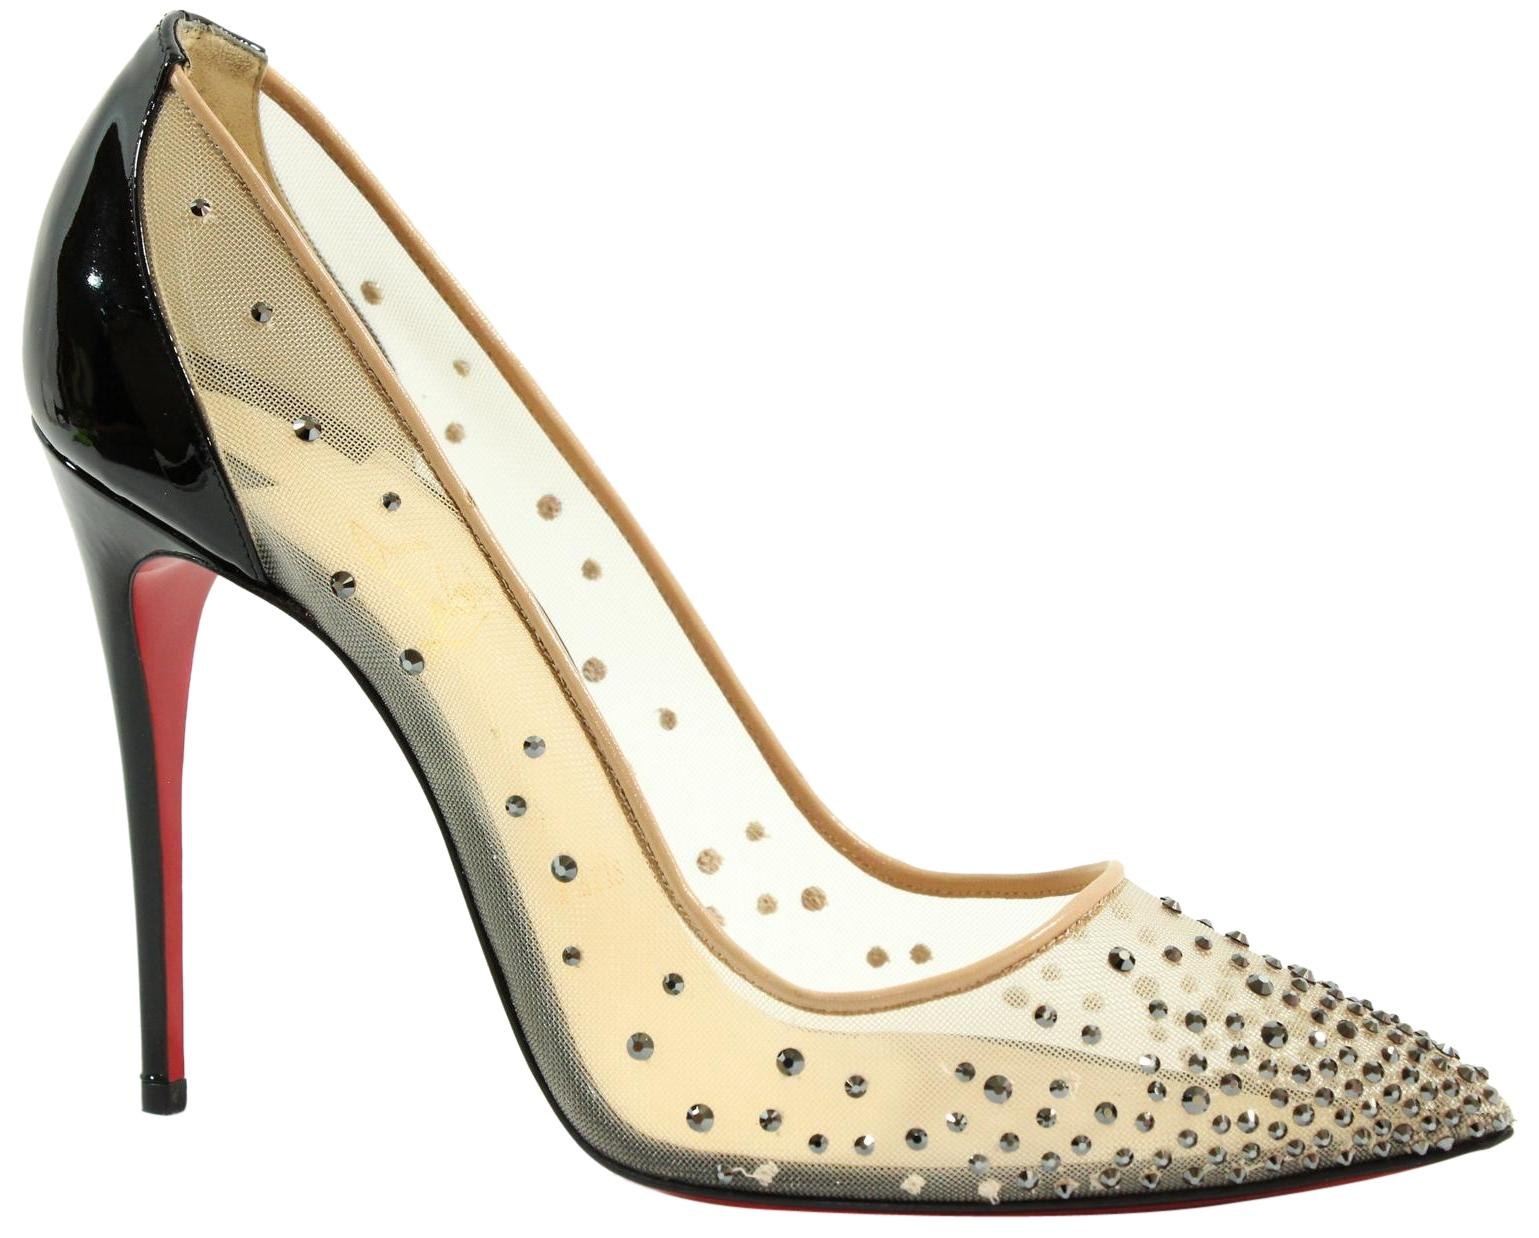 Christian Louboutin Gold Crystal-embellished Follies Strass Display Pumps Size US 9 Regular (M, B)